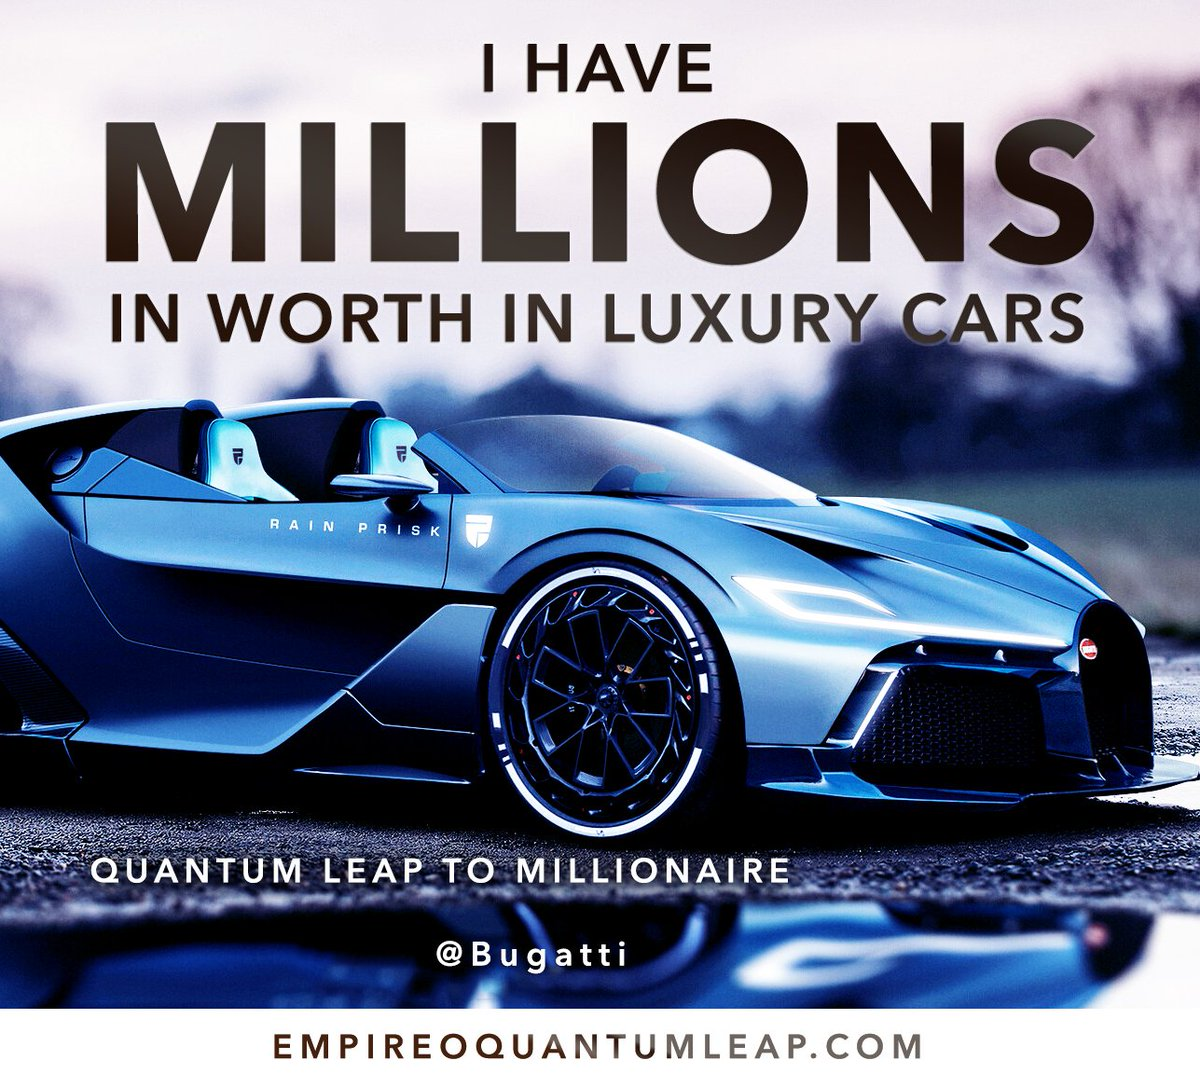 """I have MILLIONS in worth in LUXURY cars. 🏎️ 📶🔝💰🏙️  """"QUANTUM LEAP TO MILLIONAIRE""""💰💎 ▶️ I want to know more about the program https://t.co/zfXarp0sbB https://t.co/FwV88KJOVP"""